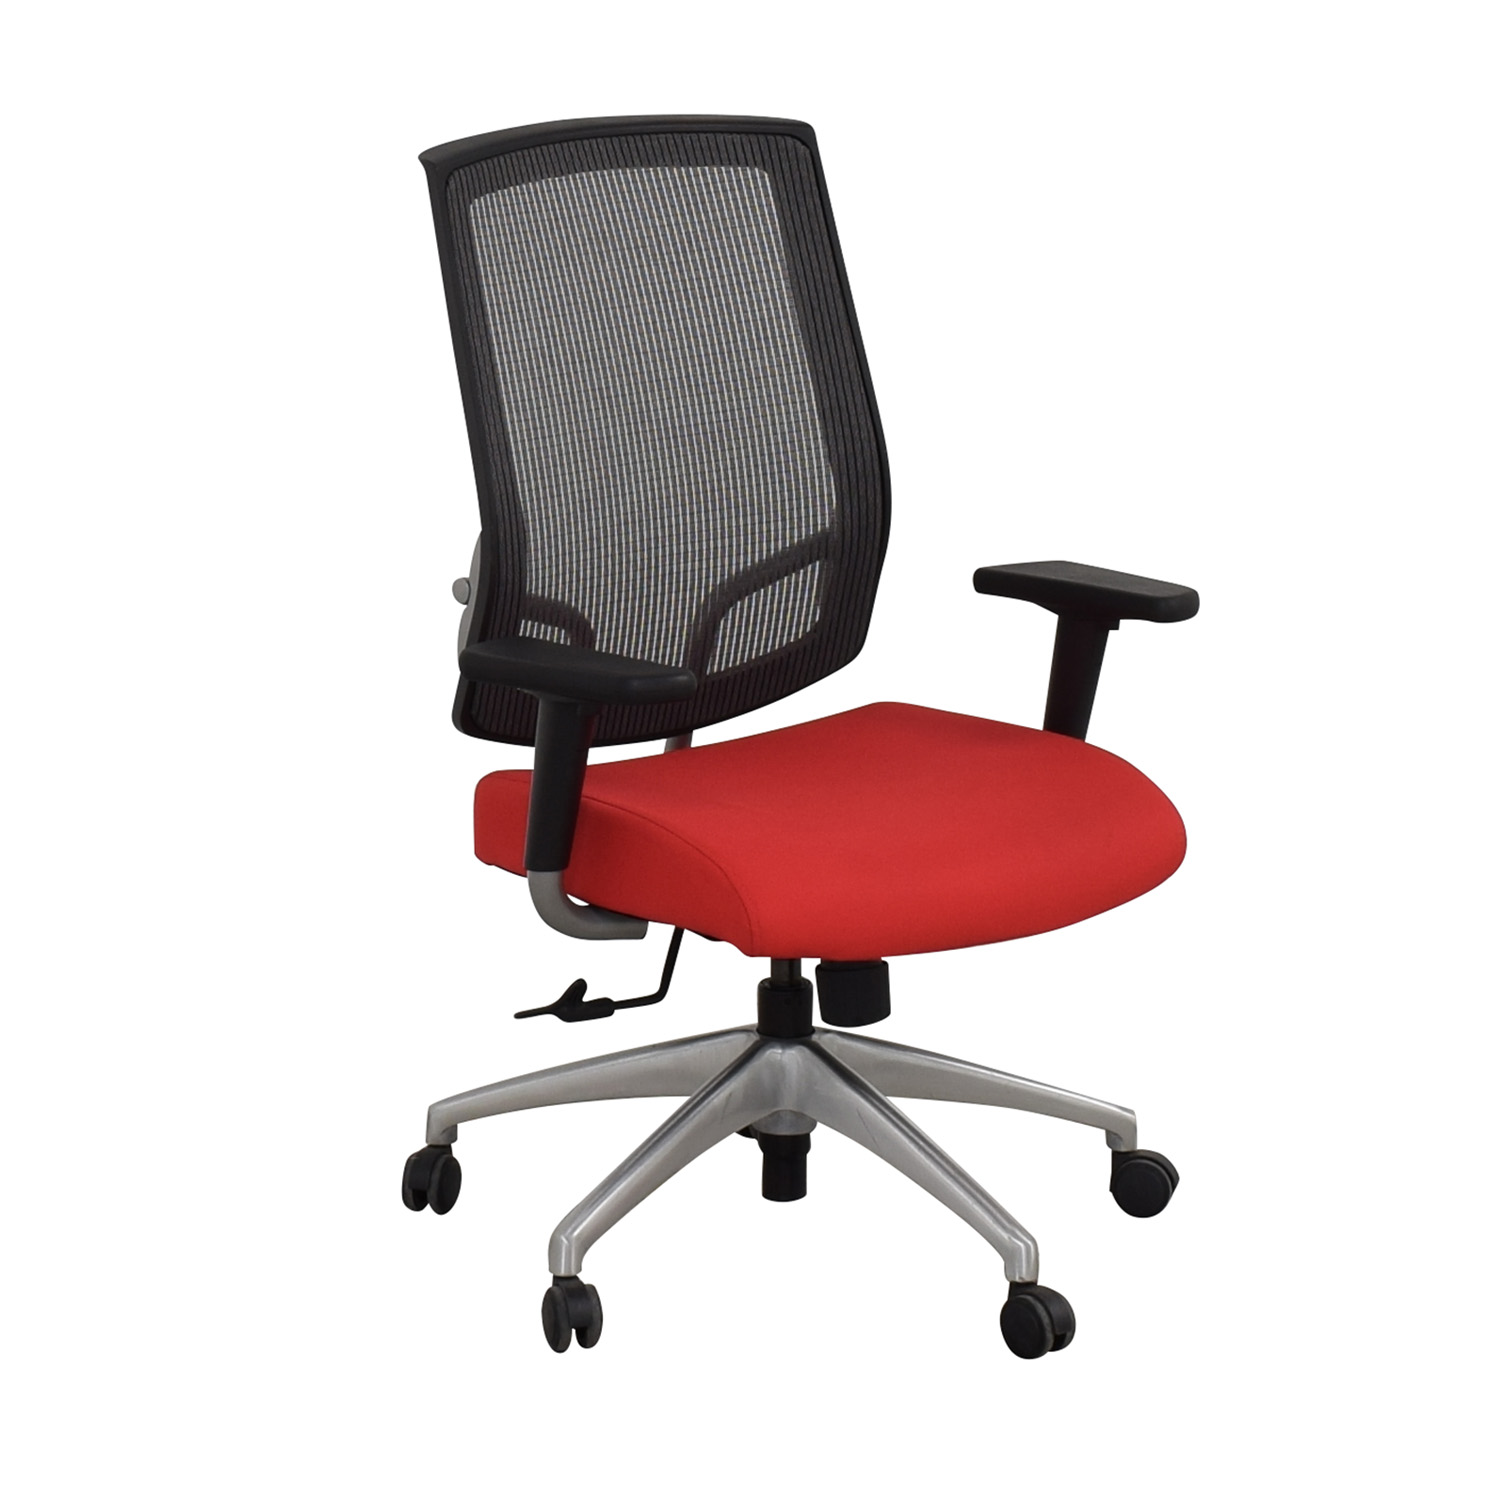 SitOnIt SitOnIt Focus High Back Office Chair